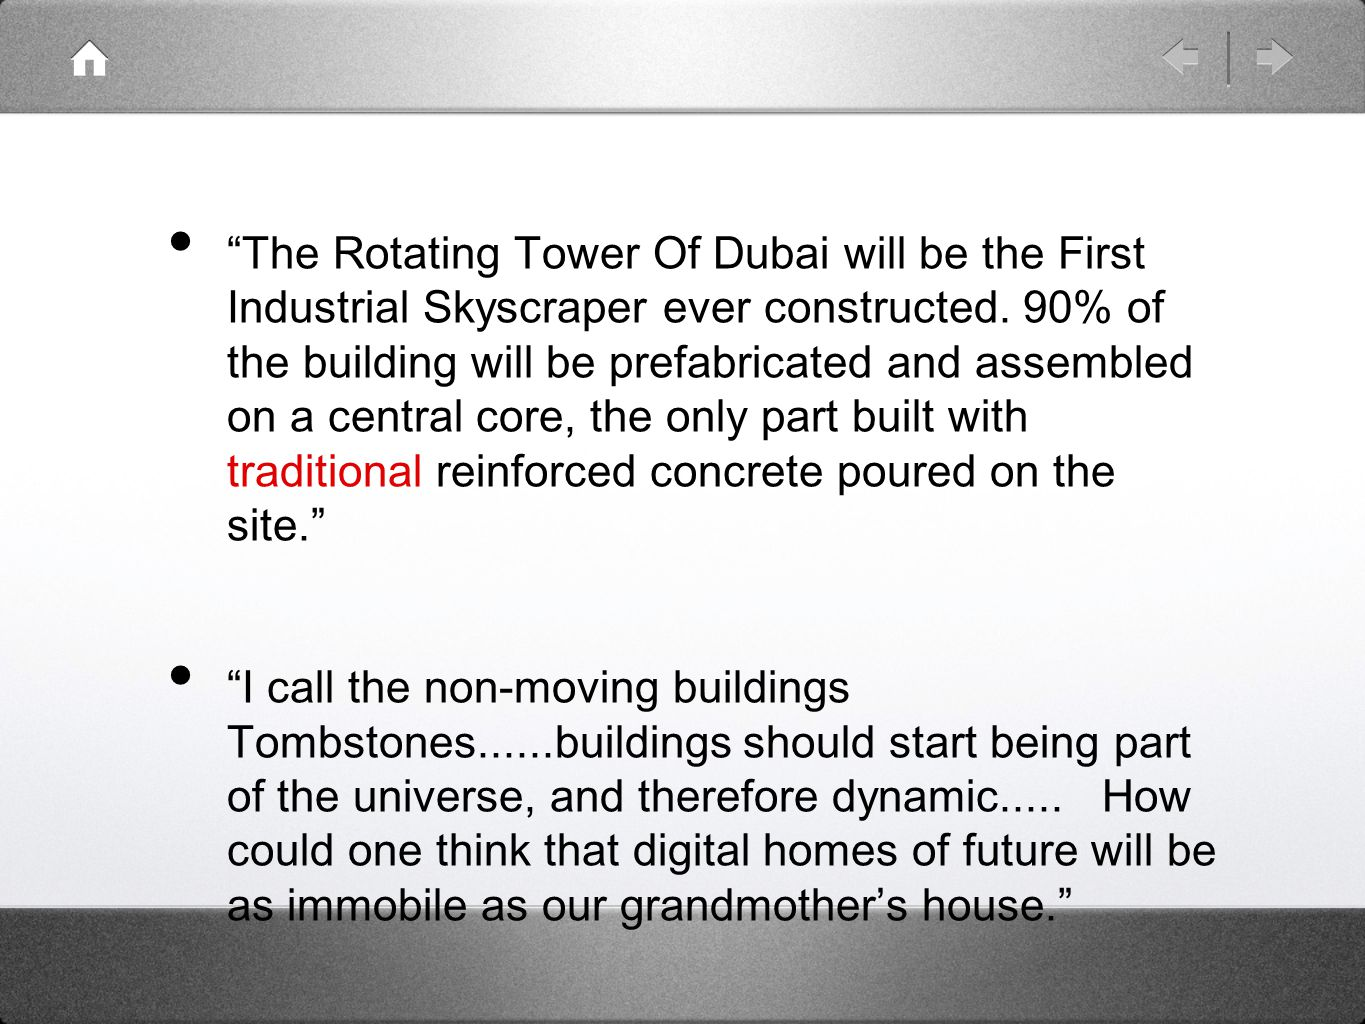 The Rotating Tower Of Dubai will be the First Industrial Skyscraper ever constructed.